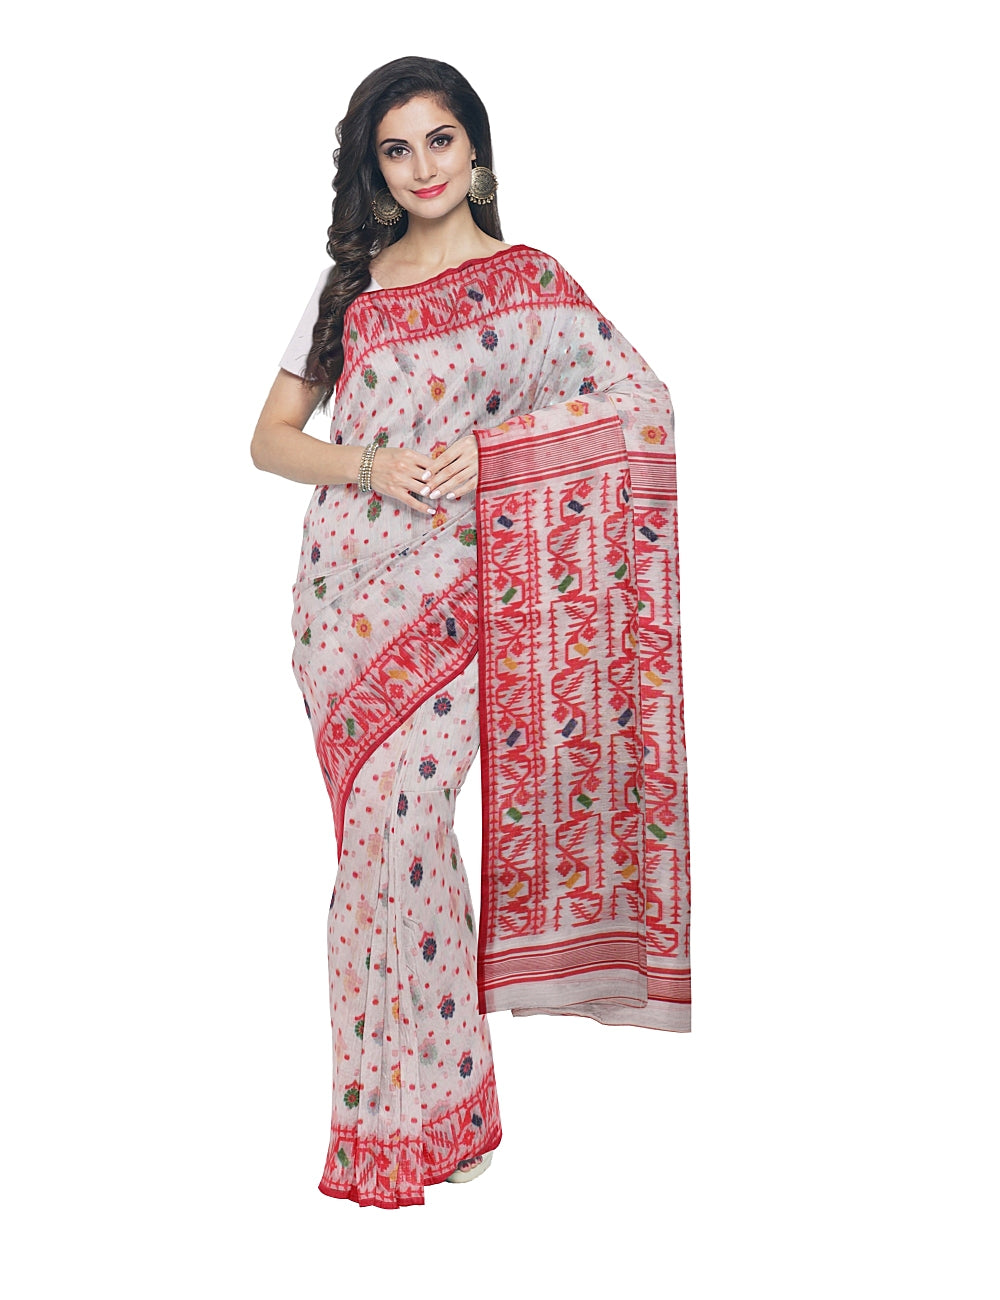 White and Red Bengal Handloom Jamdani Saree